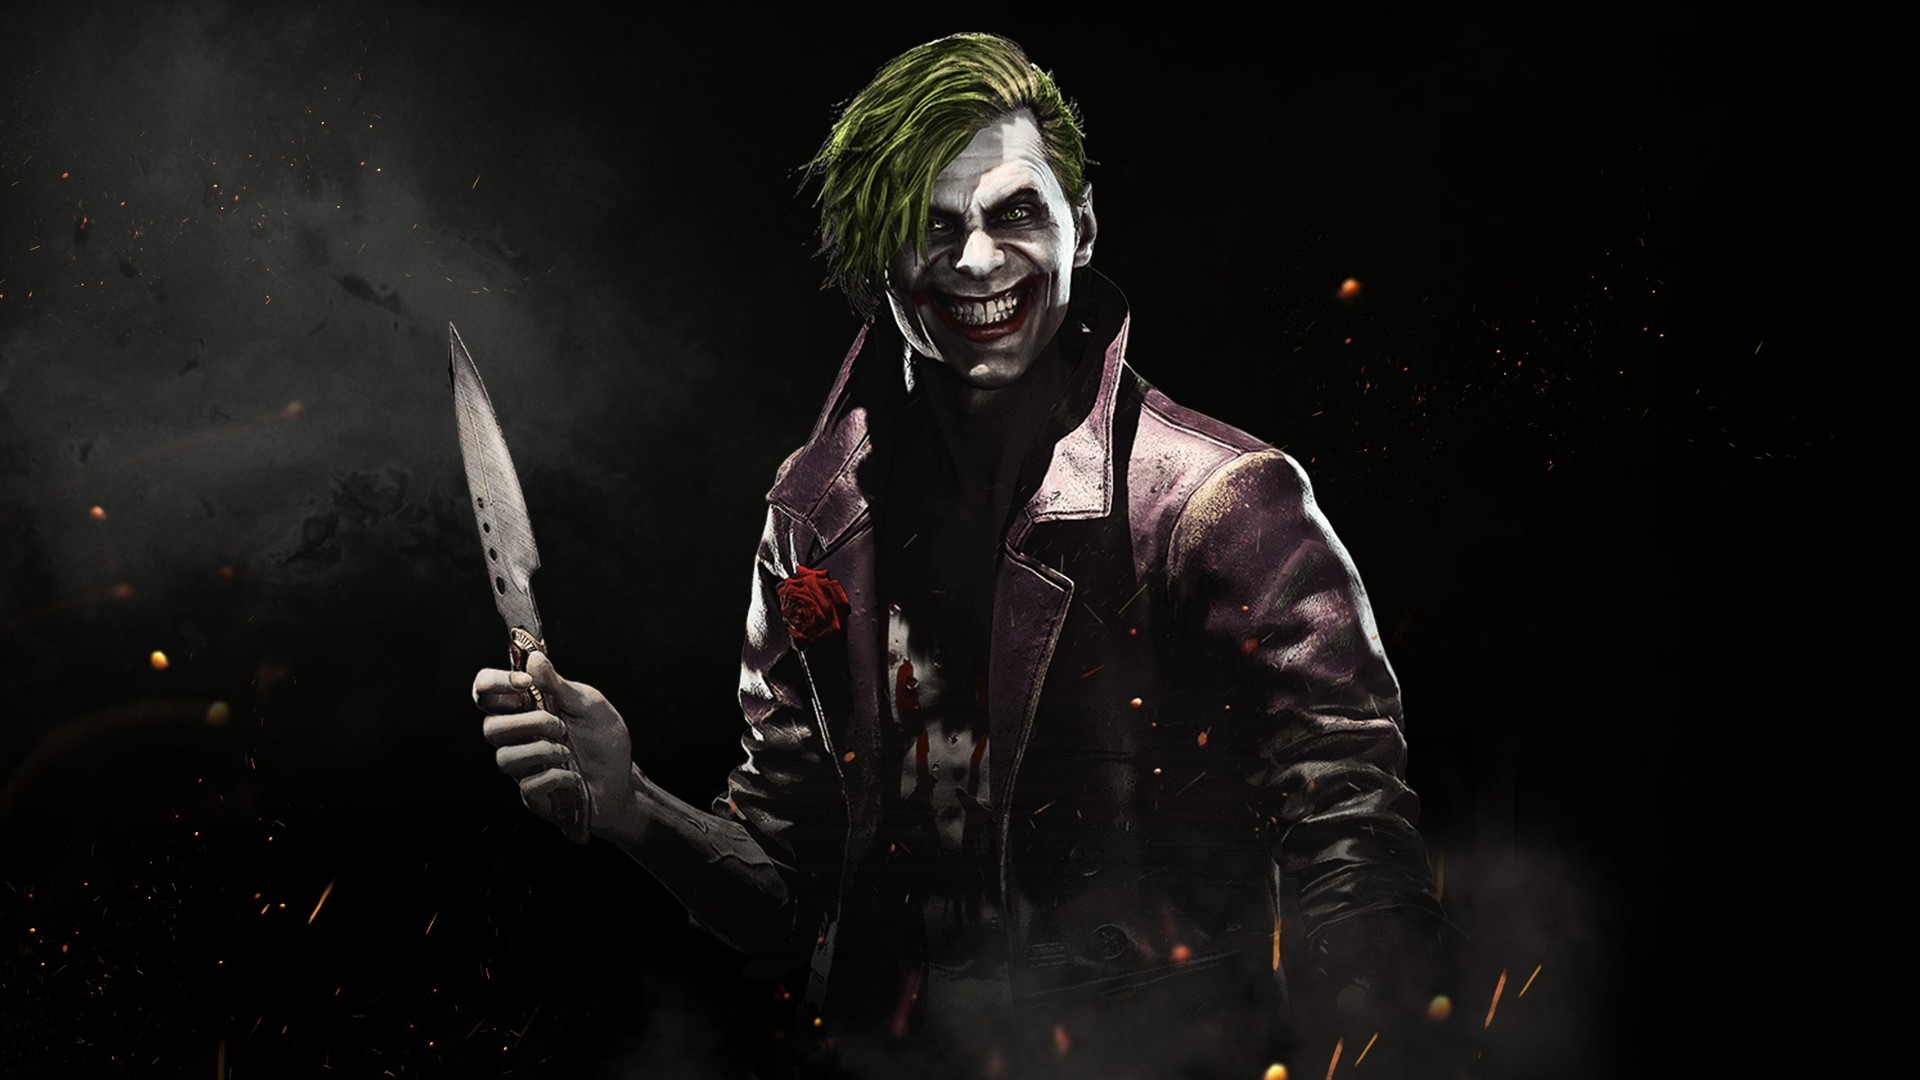 Batman Arkham Origins Joker Wallpaper Iphone